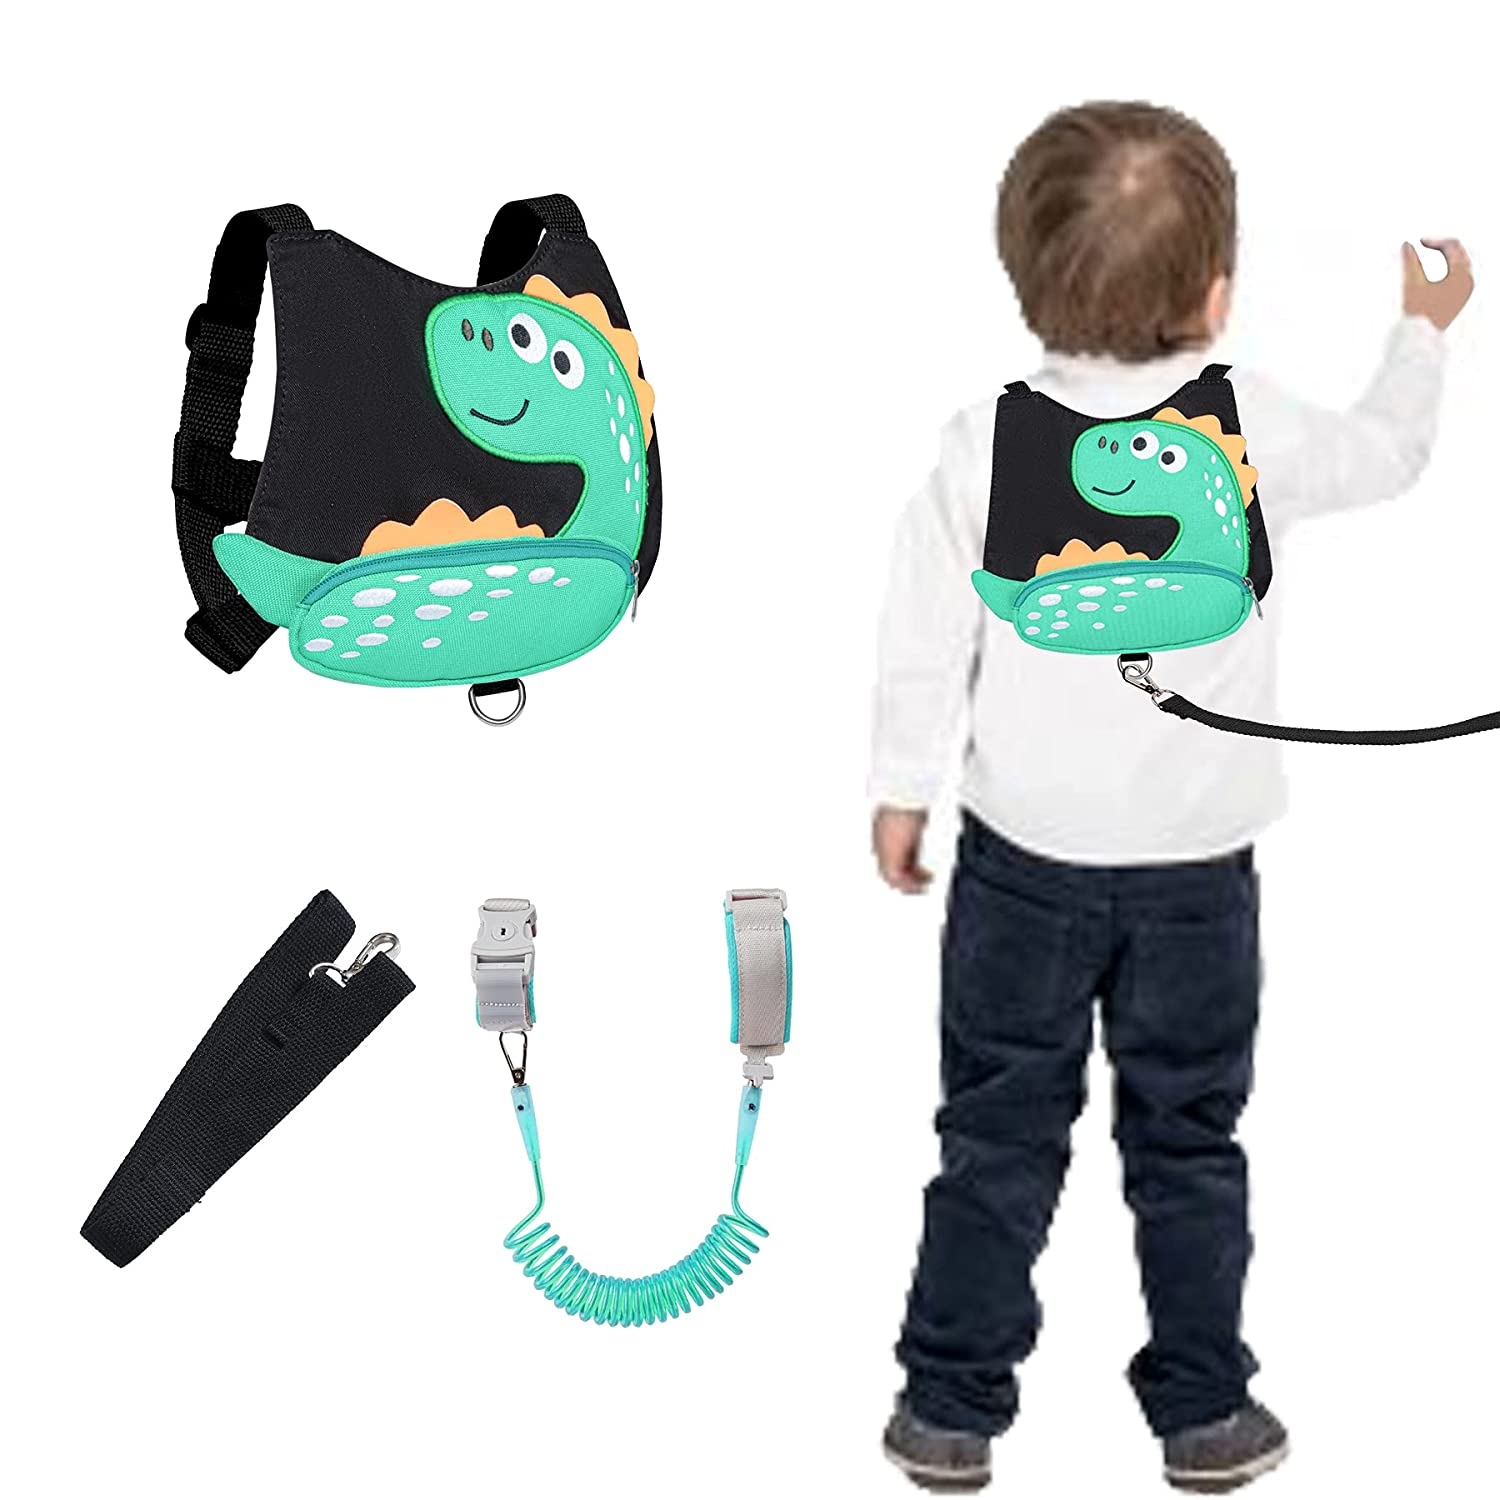 Dinosaur Toddler Kids Safety Harness with Leashes Anti Lost Wrist Leash Link Wristband (Dinosuar Black)